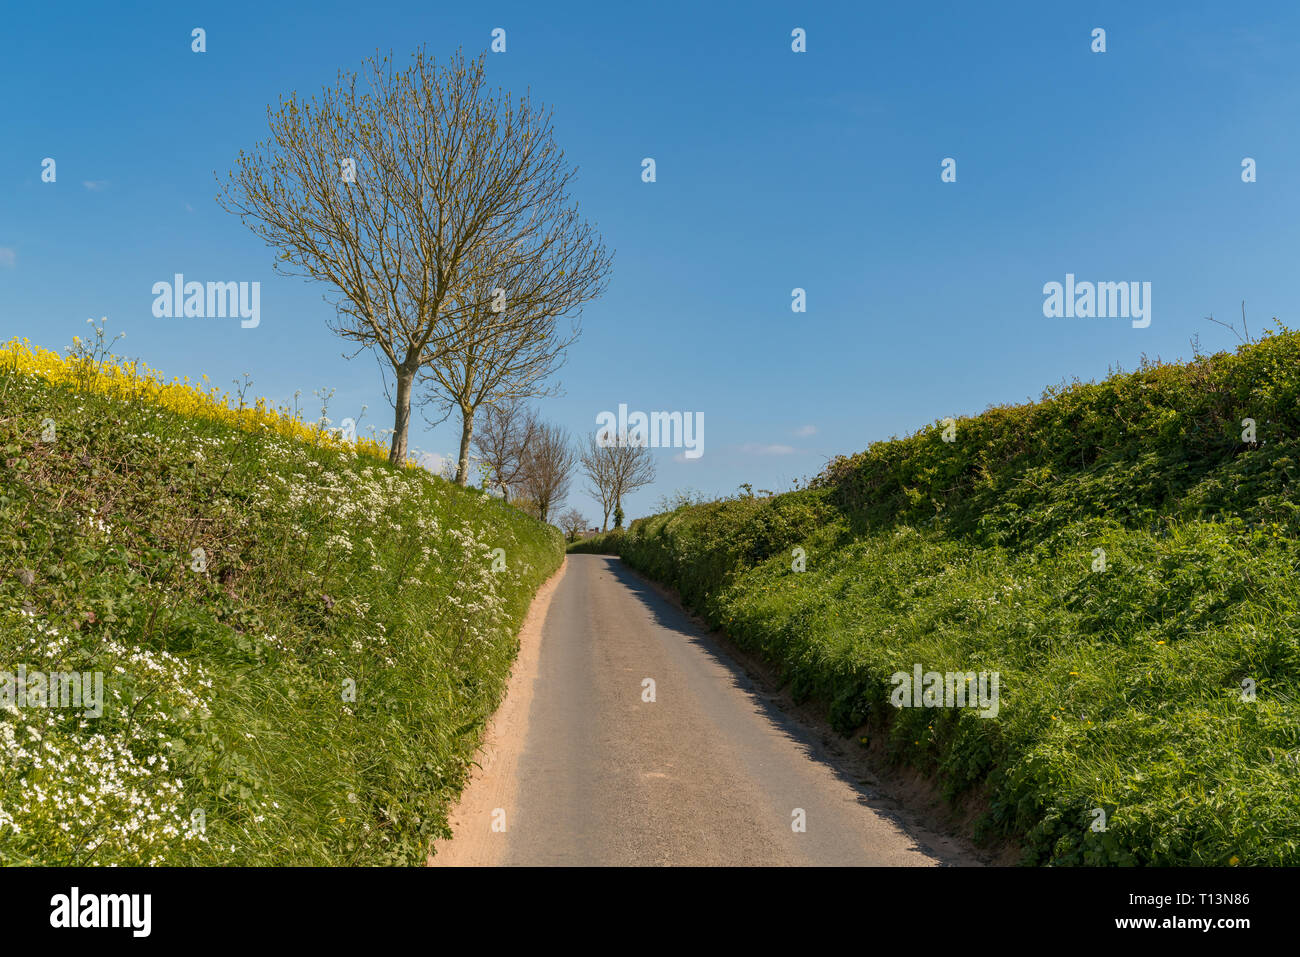 Rural One Way Road, surrounded by hedges, near Otterton, Jurassic Coast, Devon, UK - Stock Image